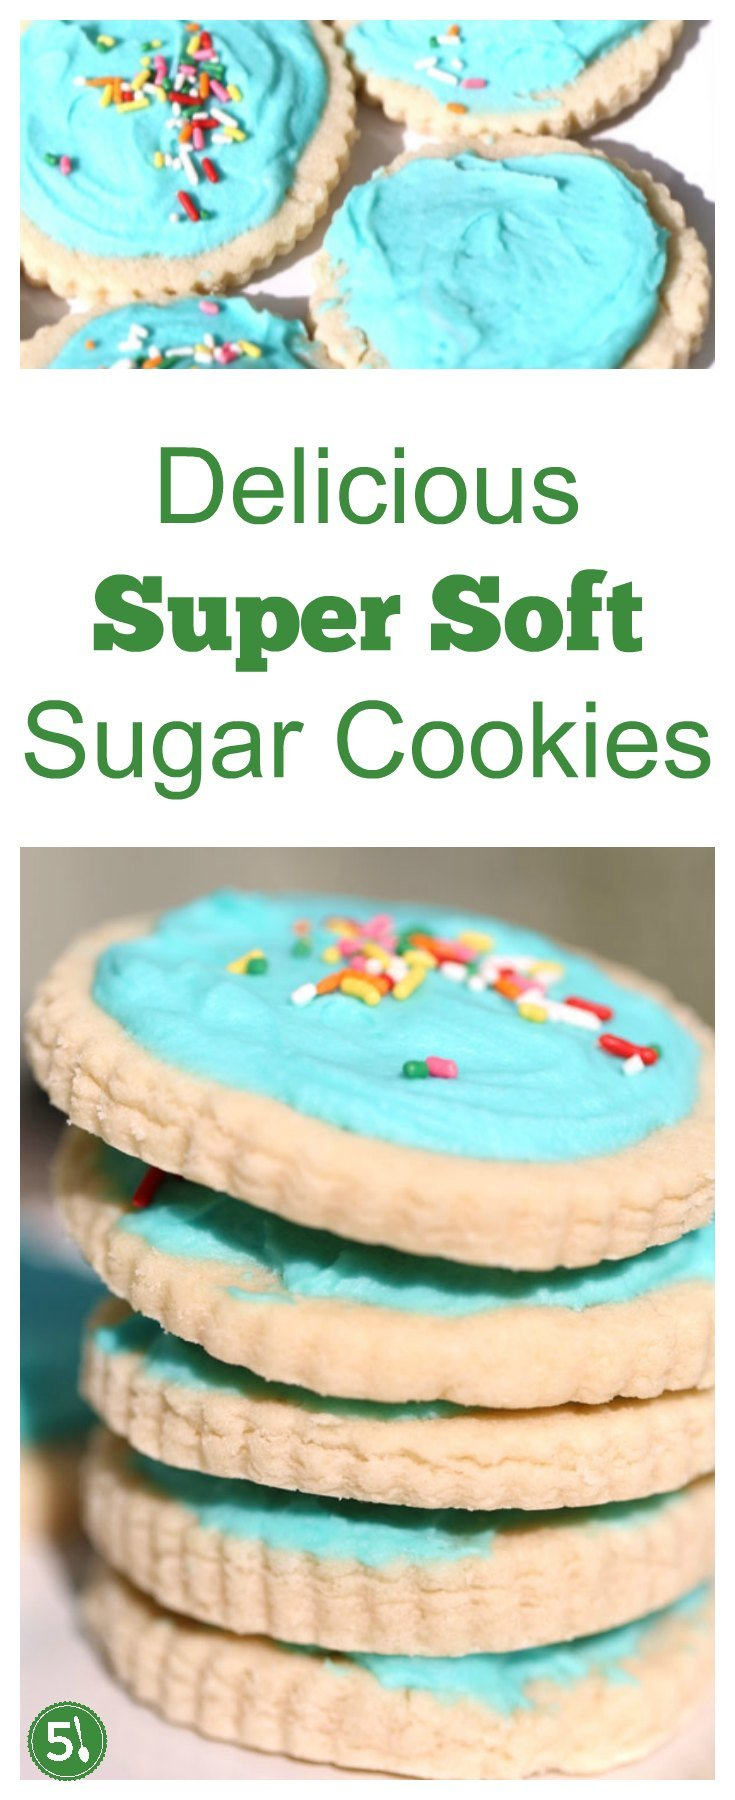 Soft sugar cookie recipe that is great for cut outs during the Holidays. Top with a homemade buttercream frosting or royal icing, and you have a divine treat.